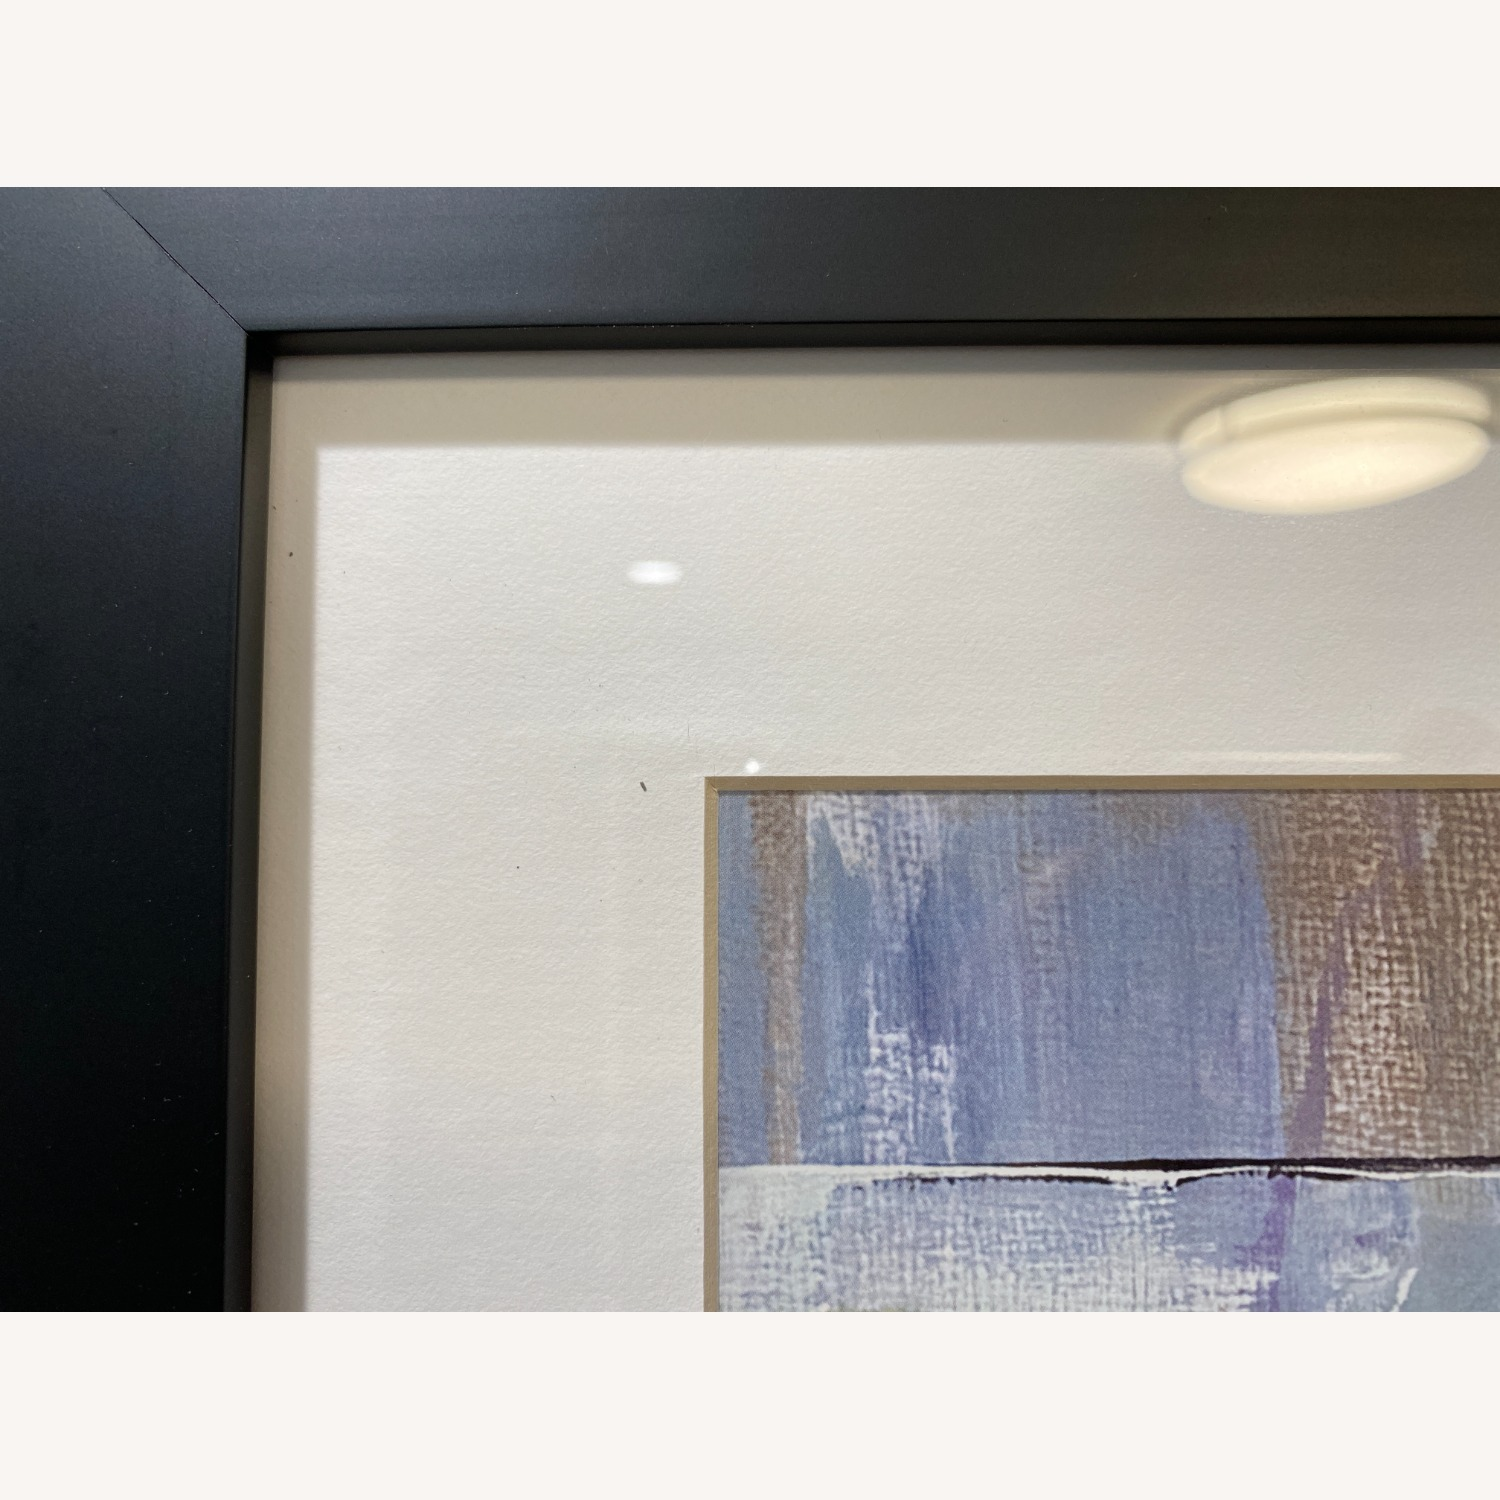 Abstract Z-Gallerie Wall Art: Metro 1 & 2 - image-6